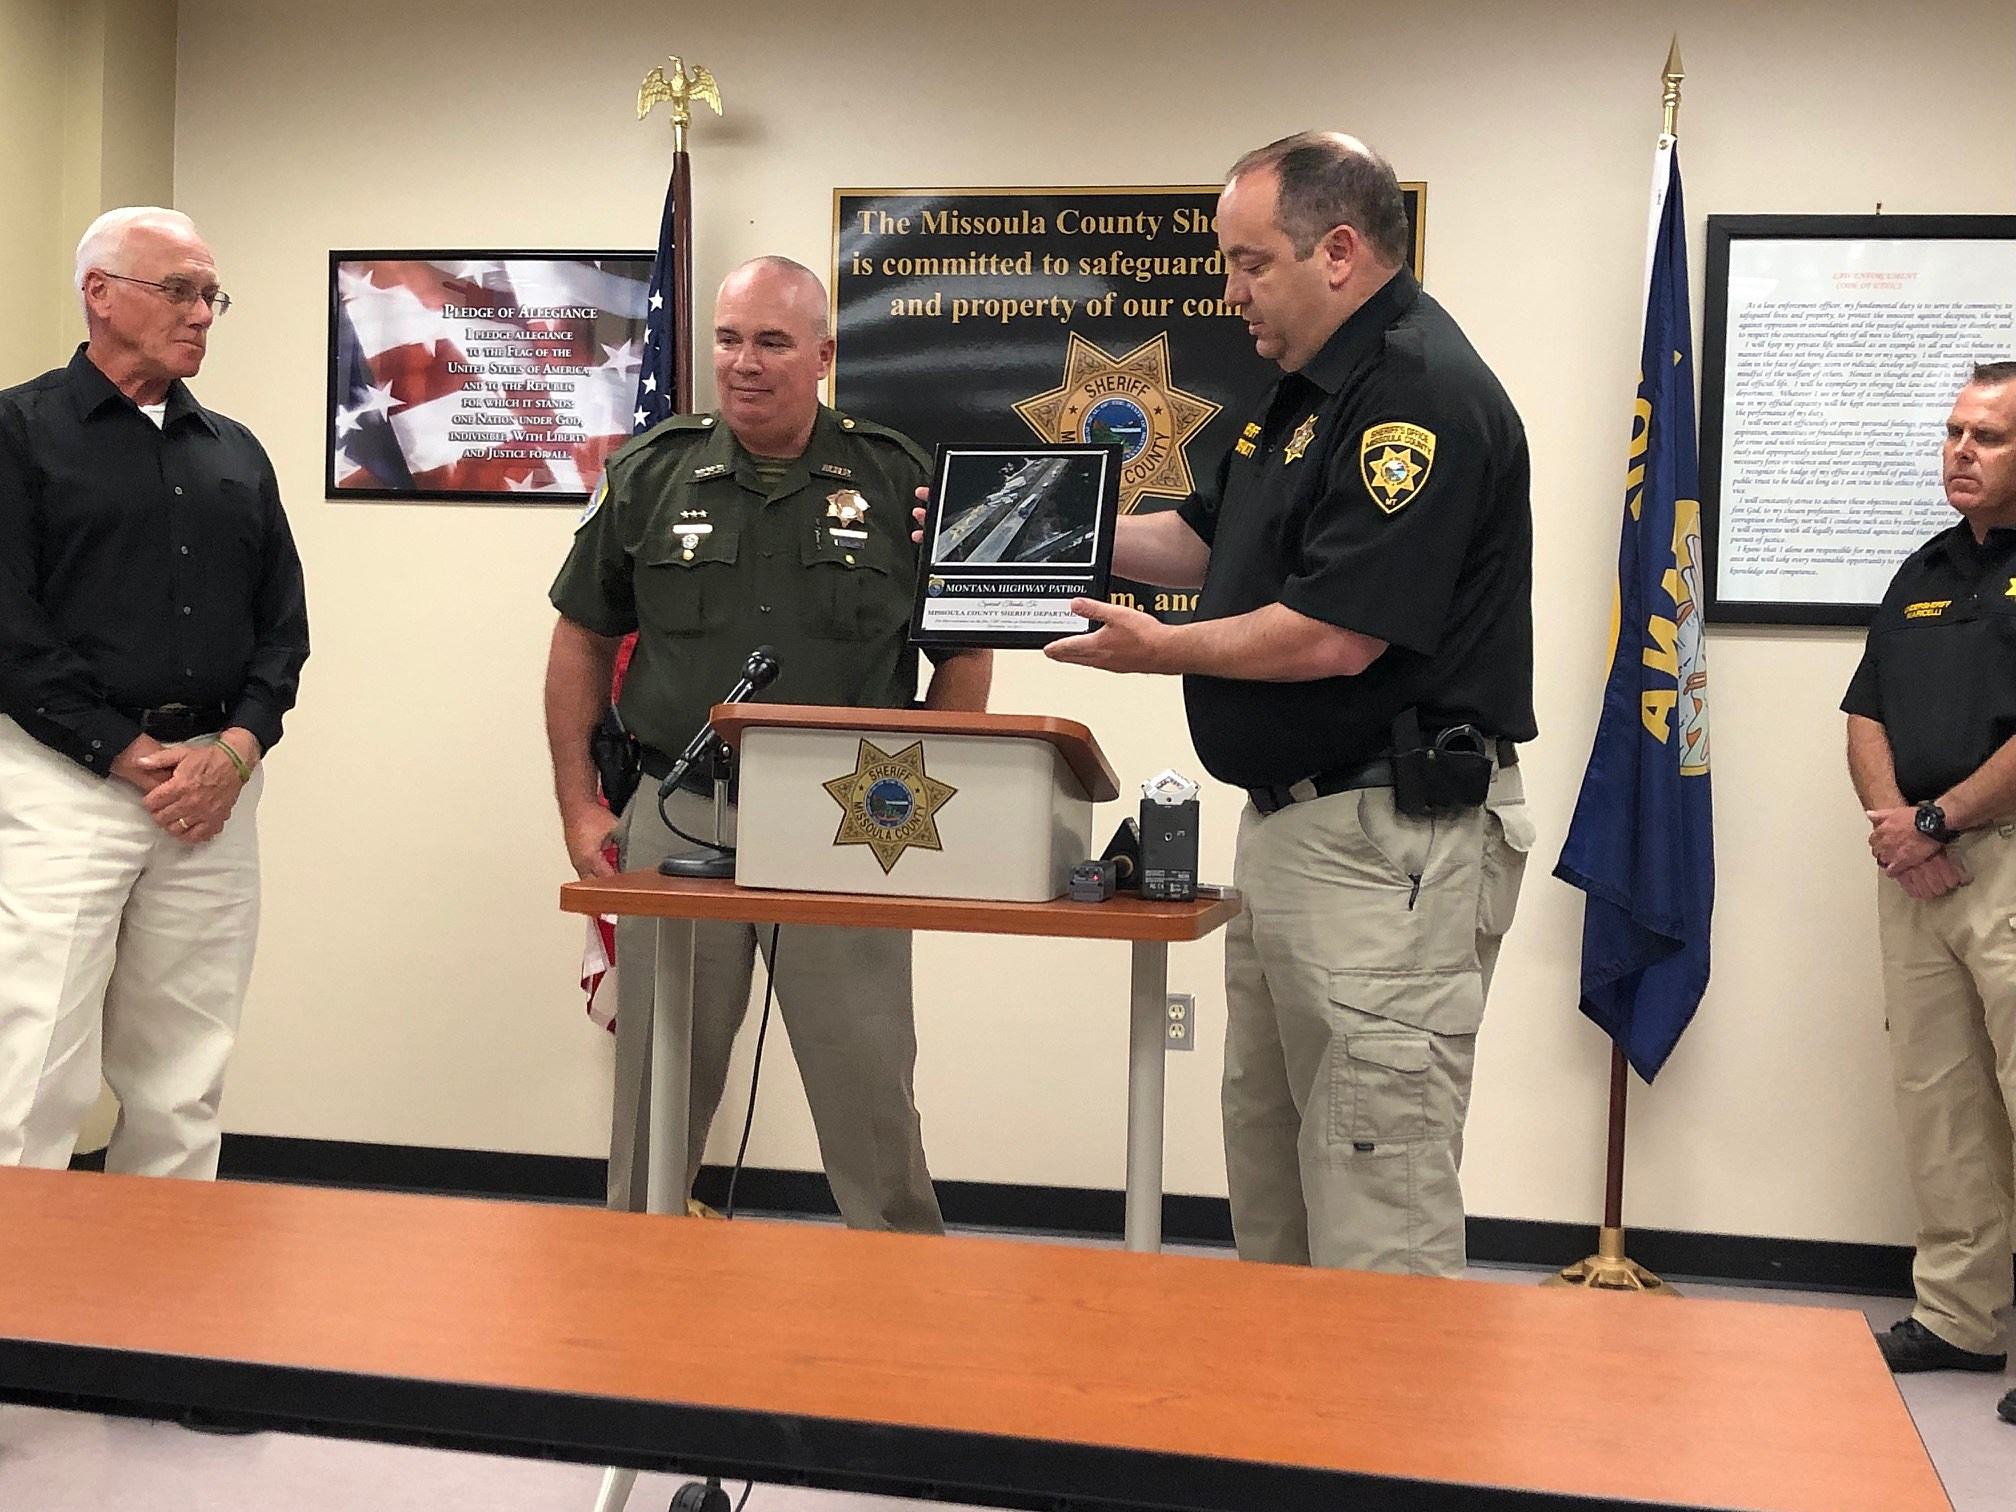 MHP Honors MCSO for Reaction to Fatal Five Semi Truck I-90 Crash